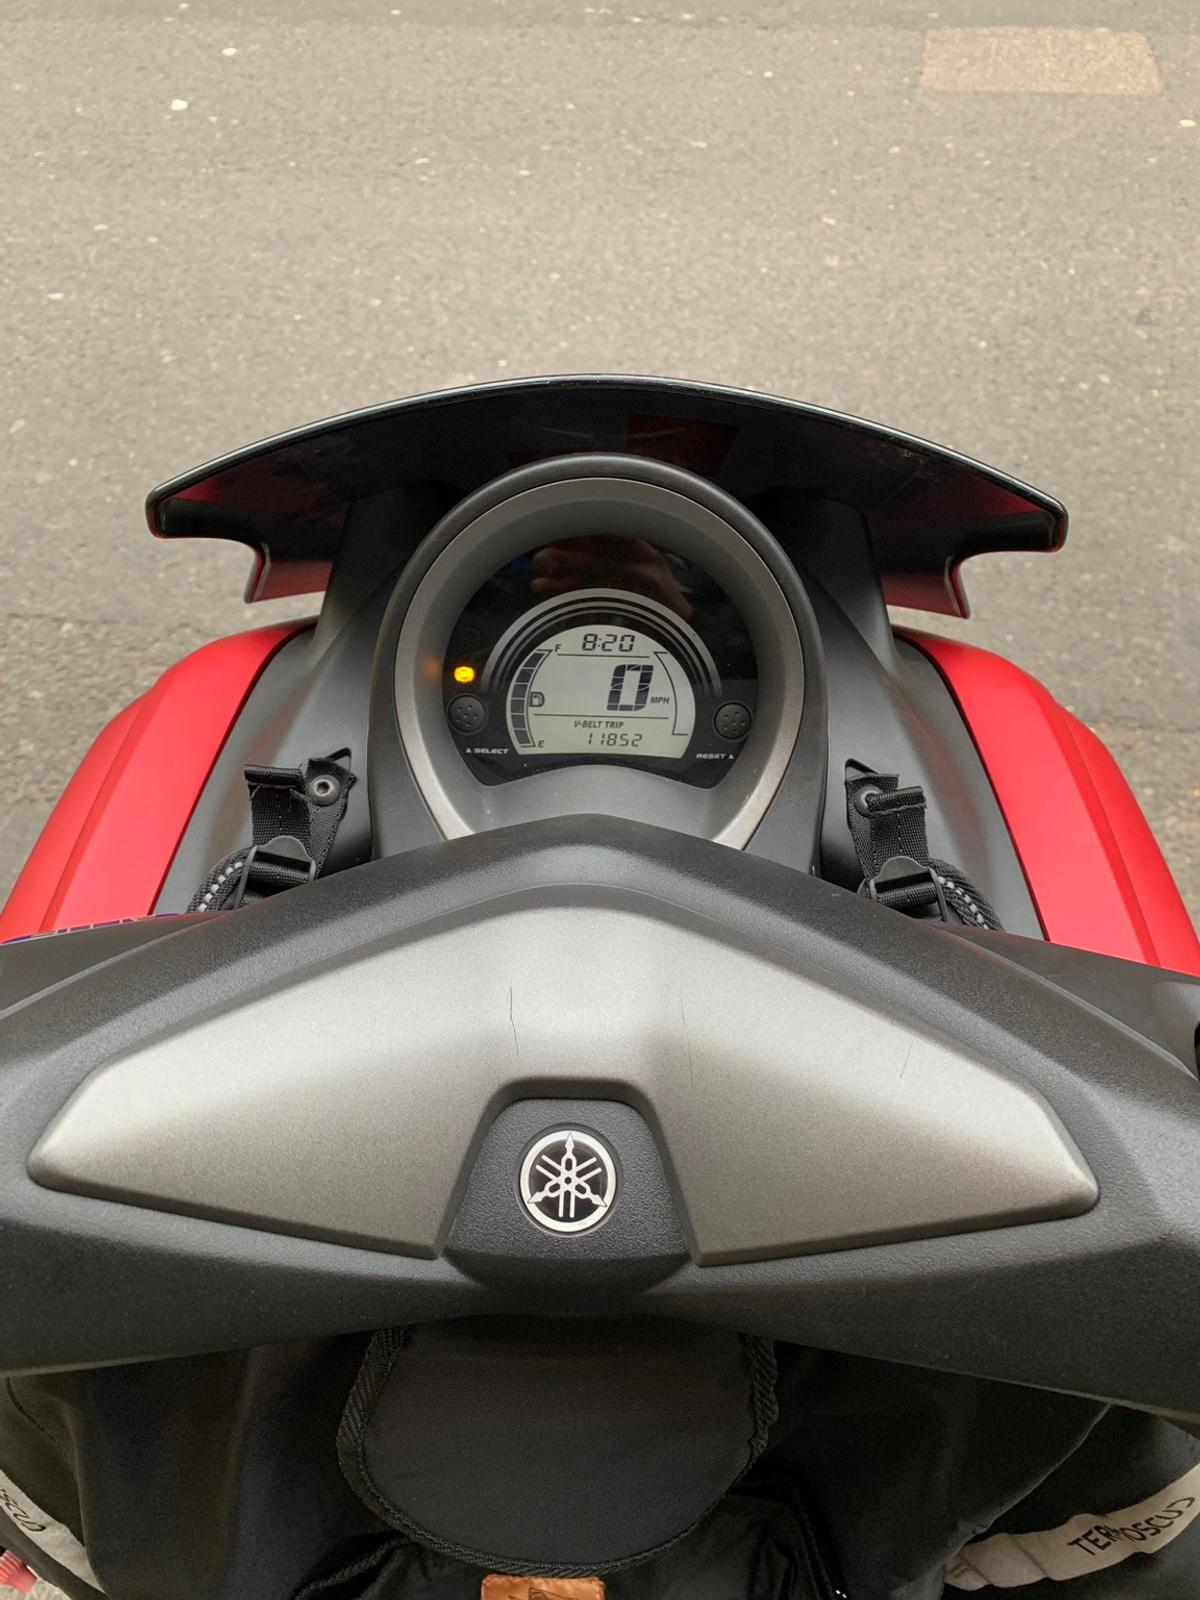 Yamaha nmax abs 2018 model in W1F Westminster for £2,300 00 for sale